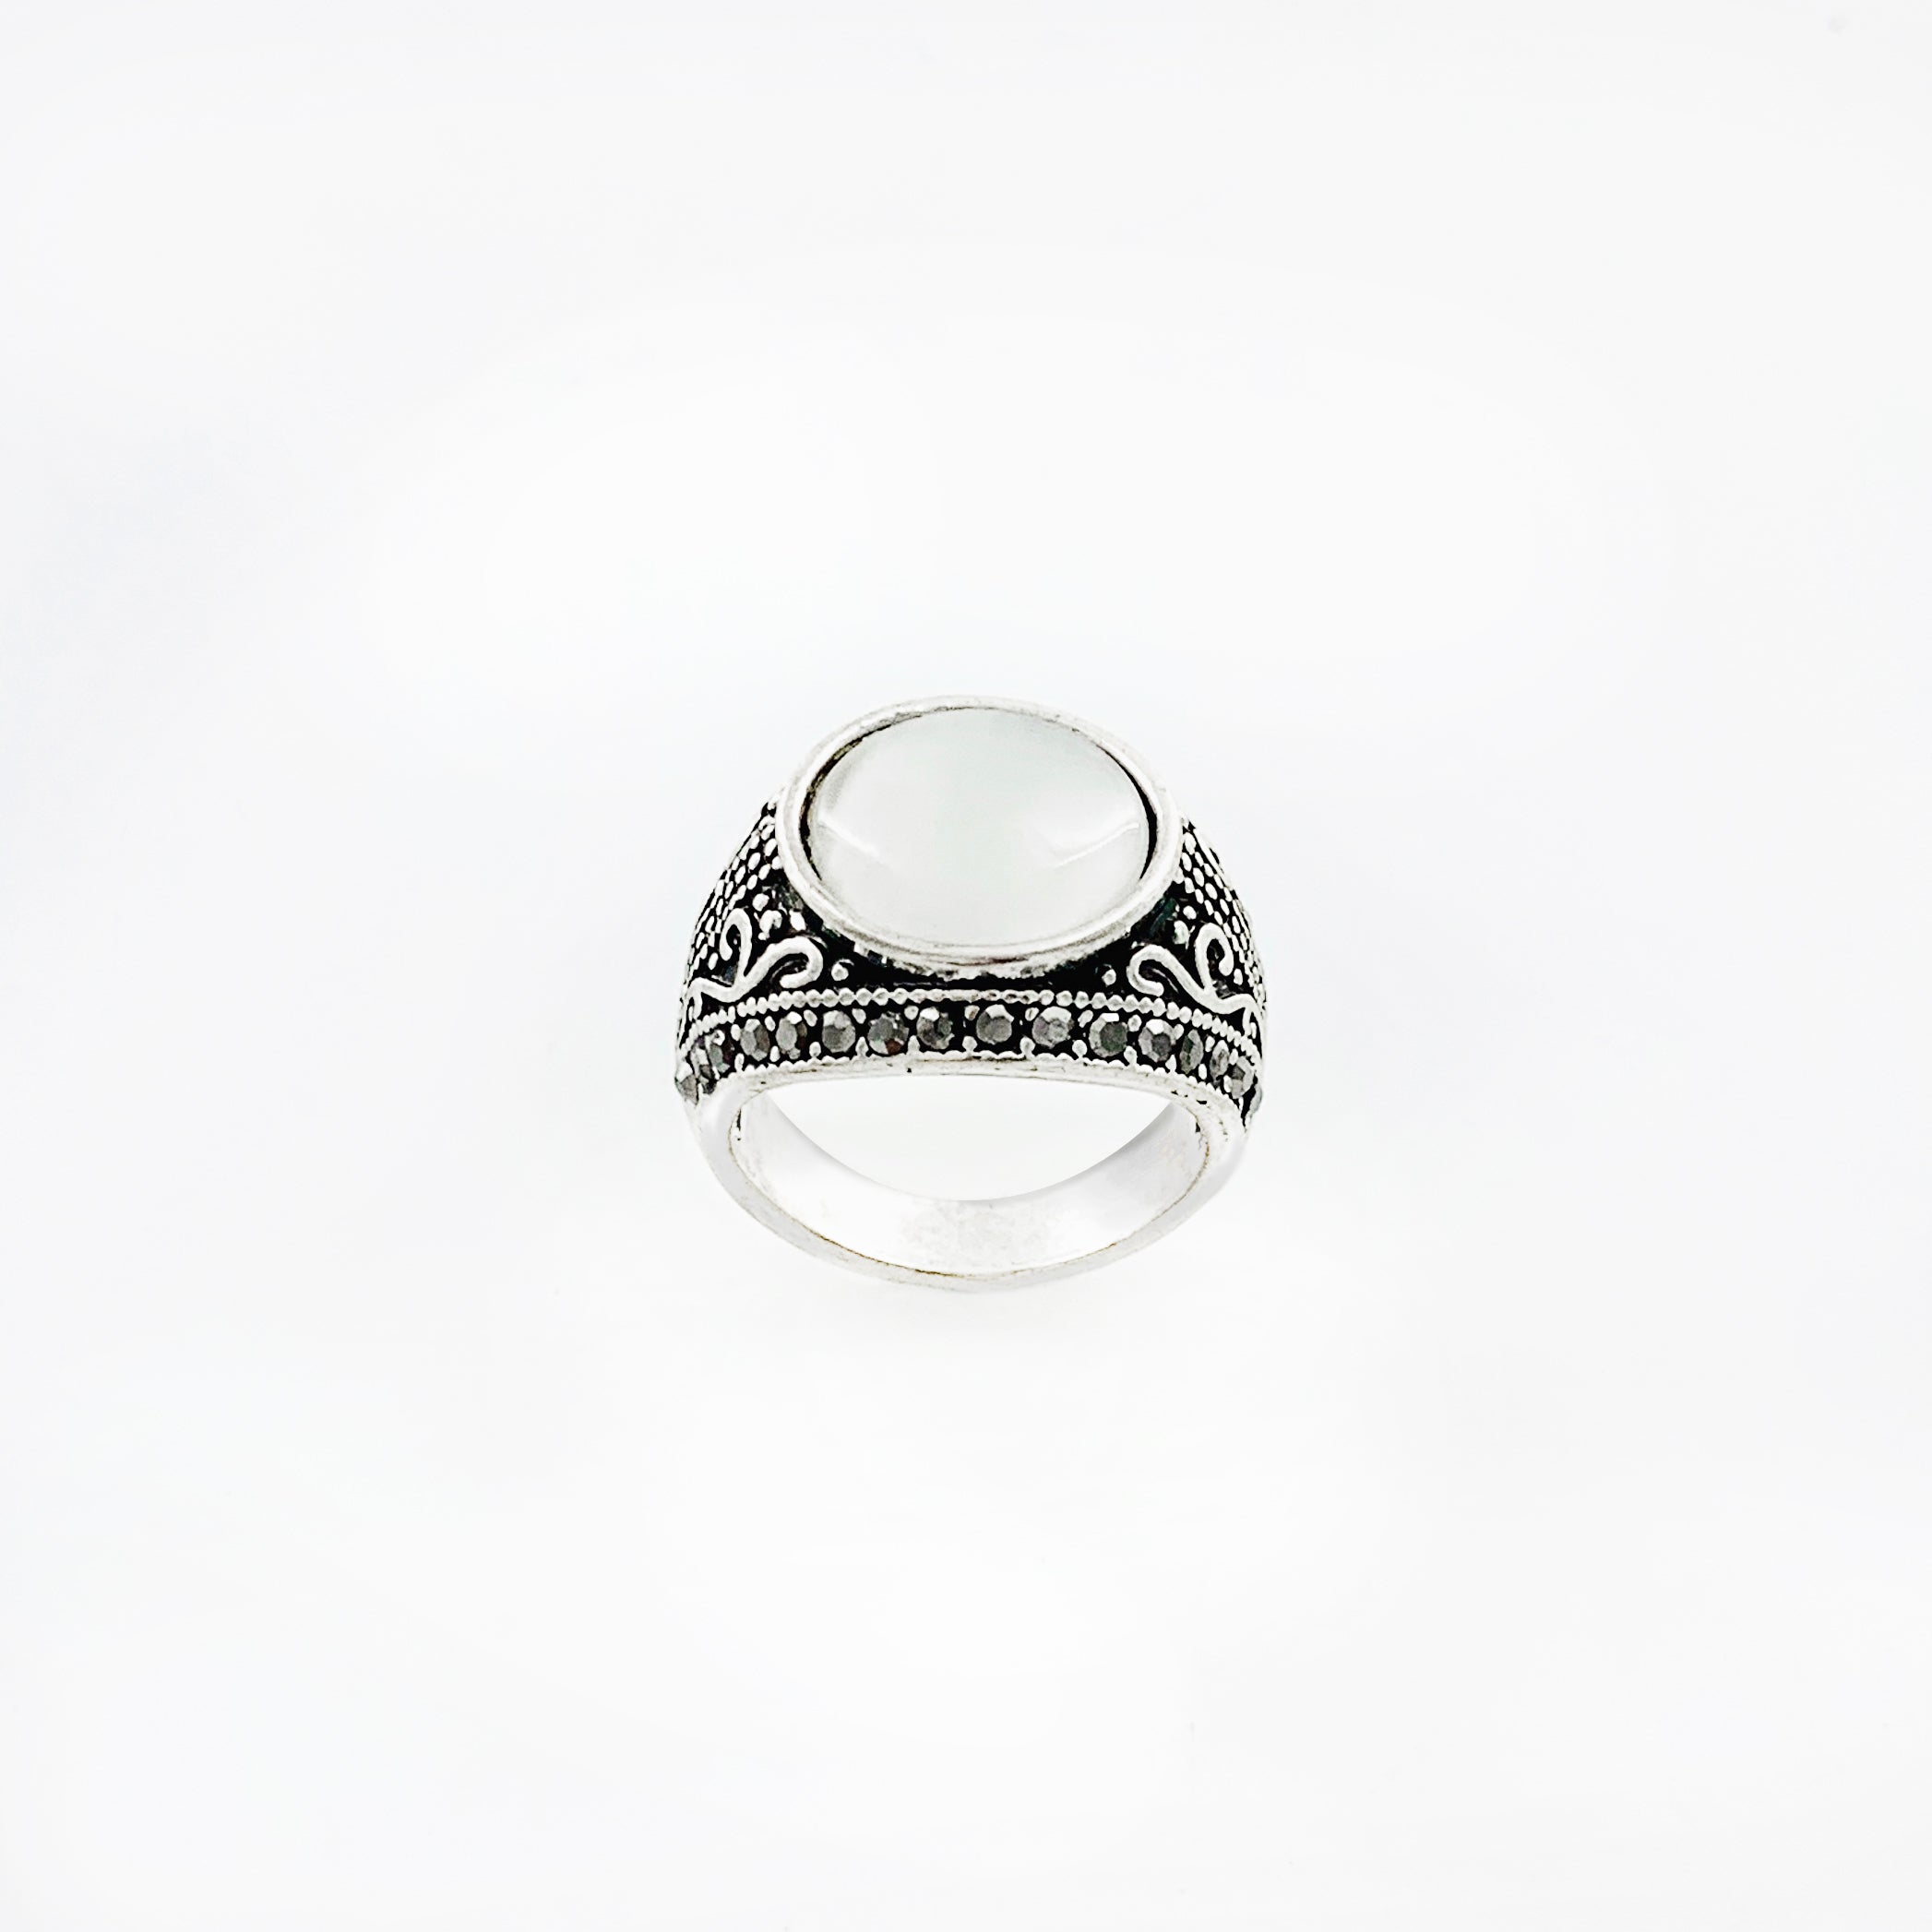 Art deco inspired silver ring with white cateye stone